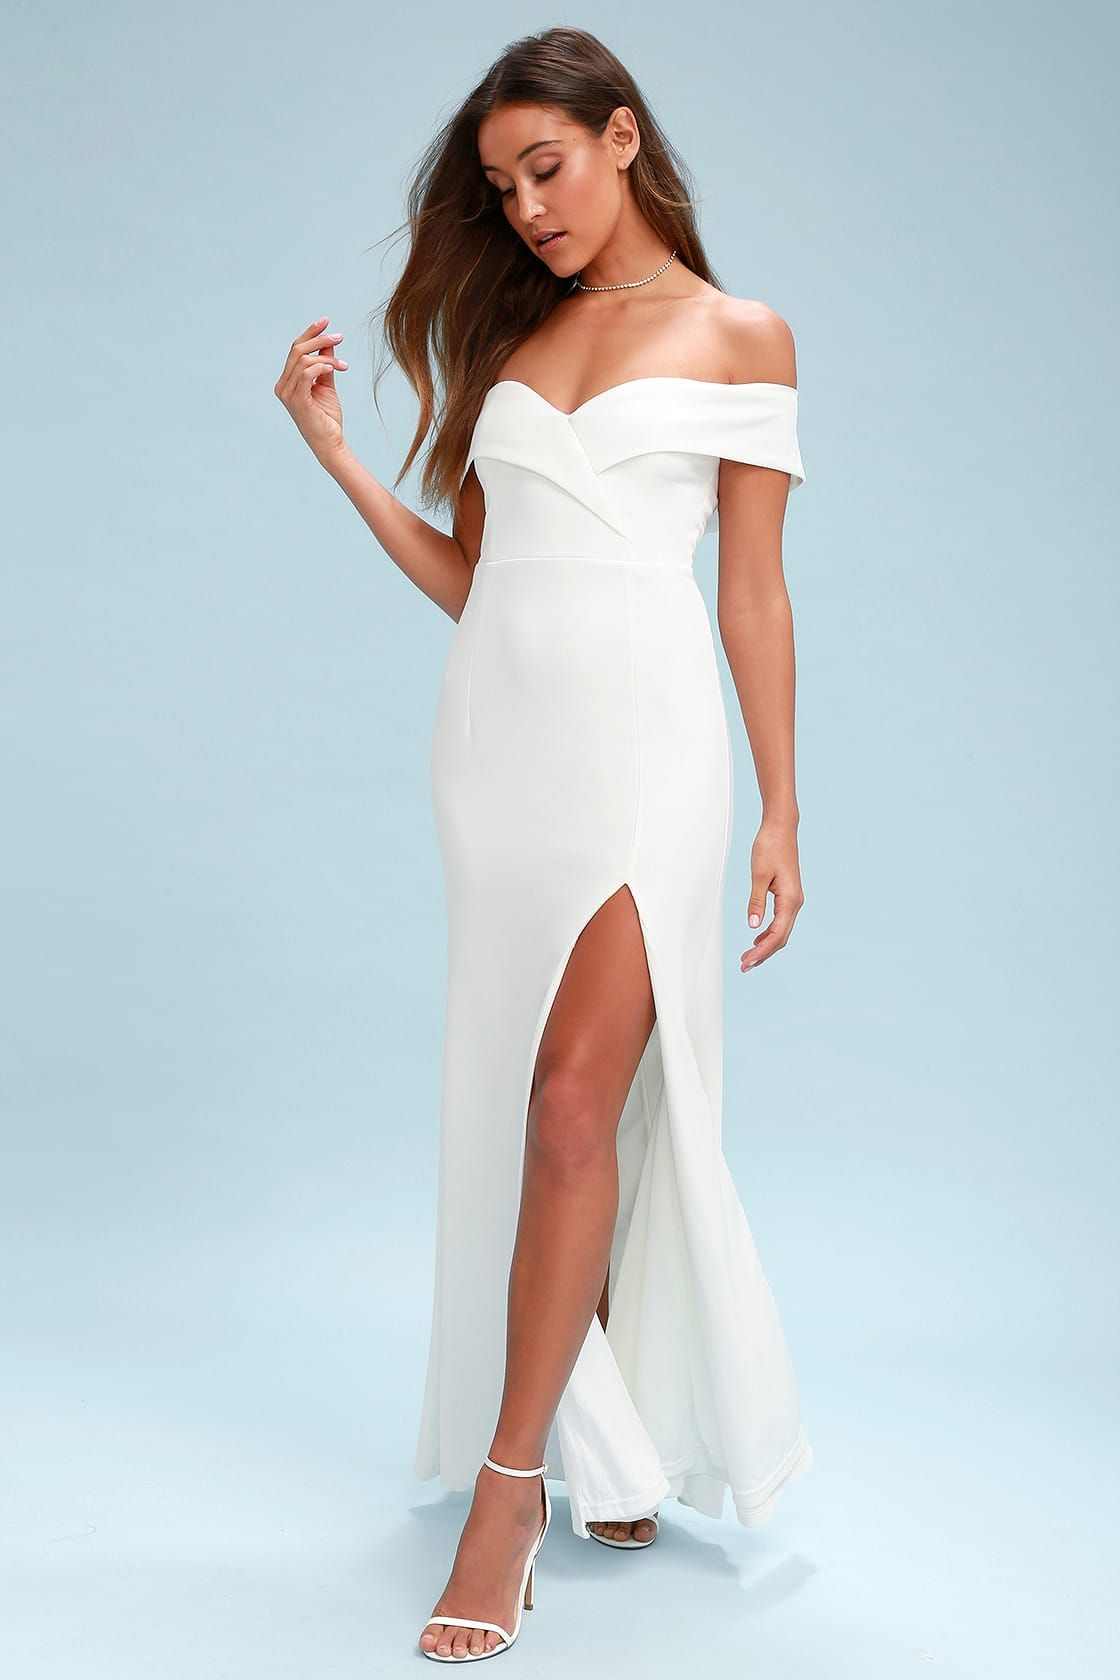 dc53e66a3f Lulus | Song of Love White Off-the-Shoulder Maxi Dress | Size Large ...